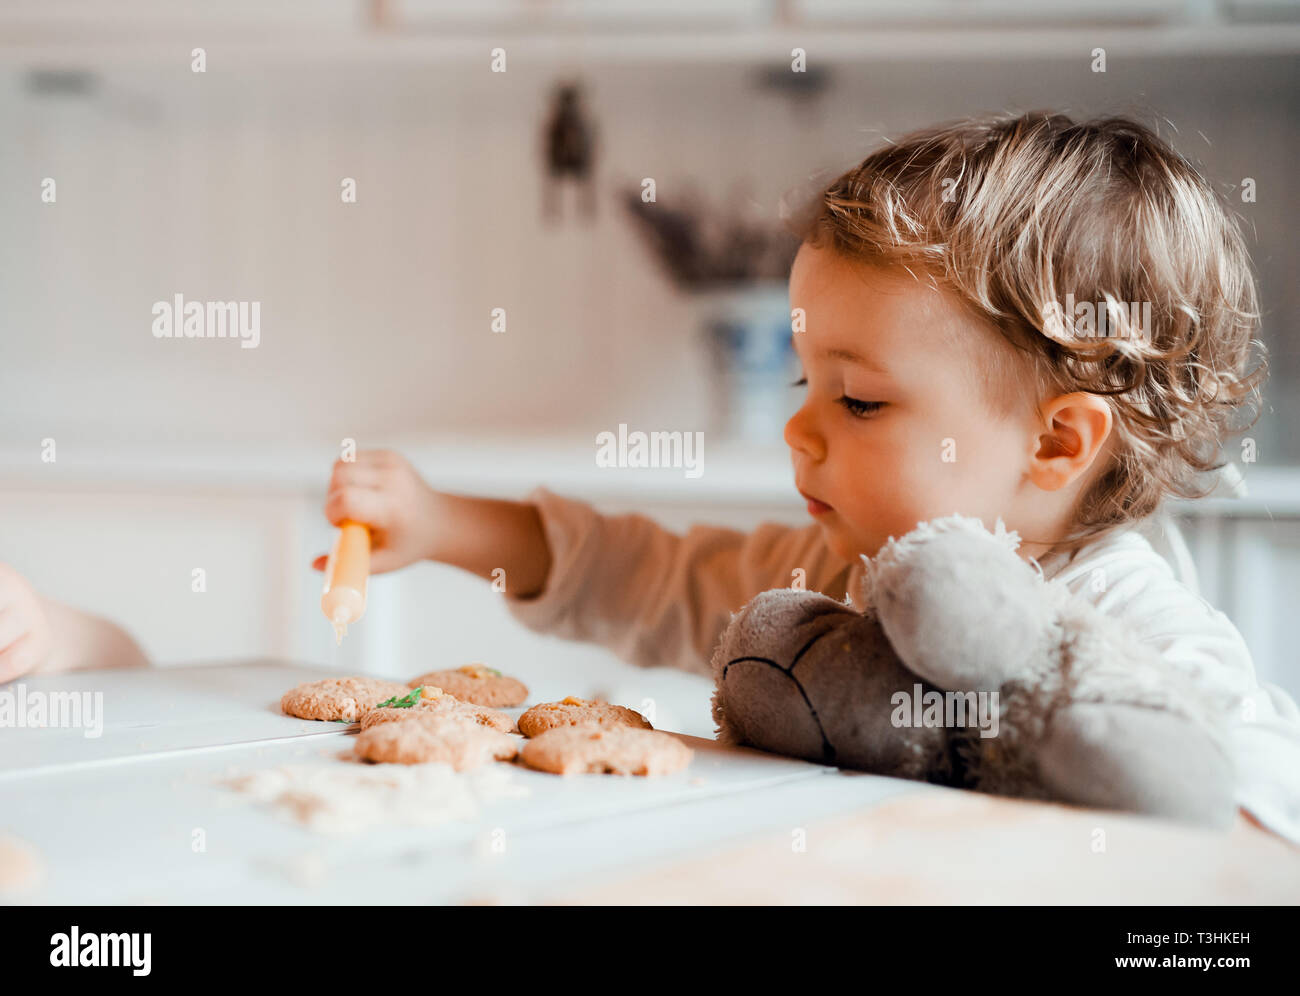 A small toddler girl sitting at the table, decorating cakes at home. - Stock Image